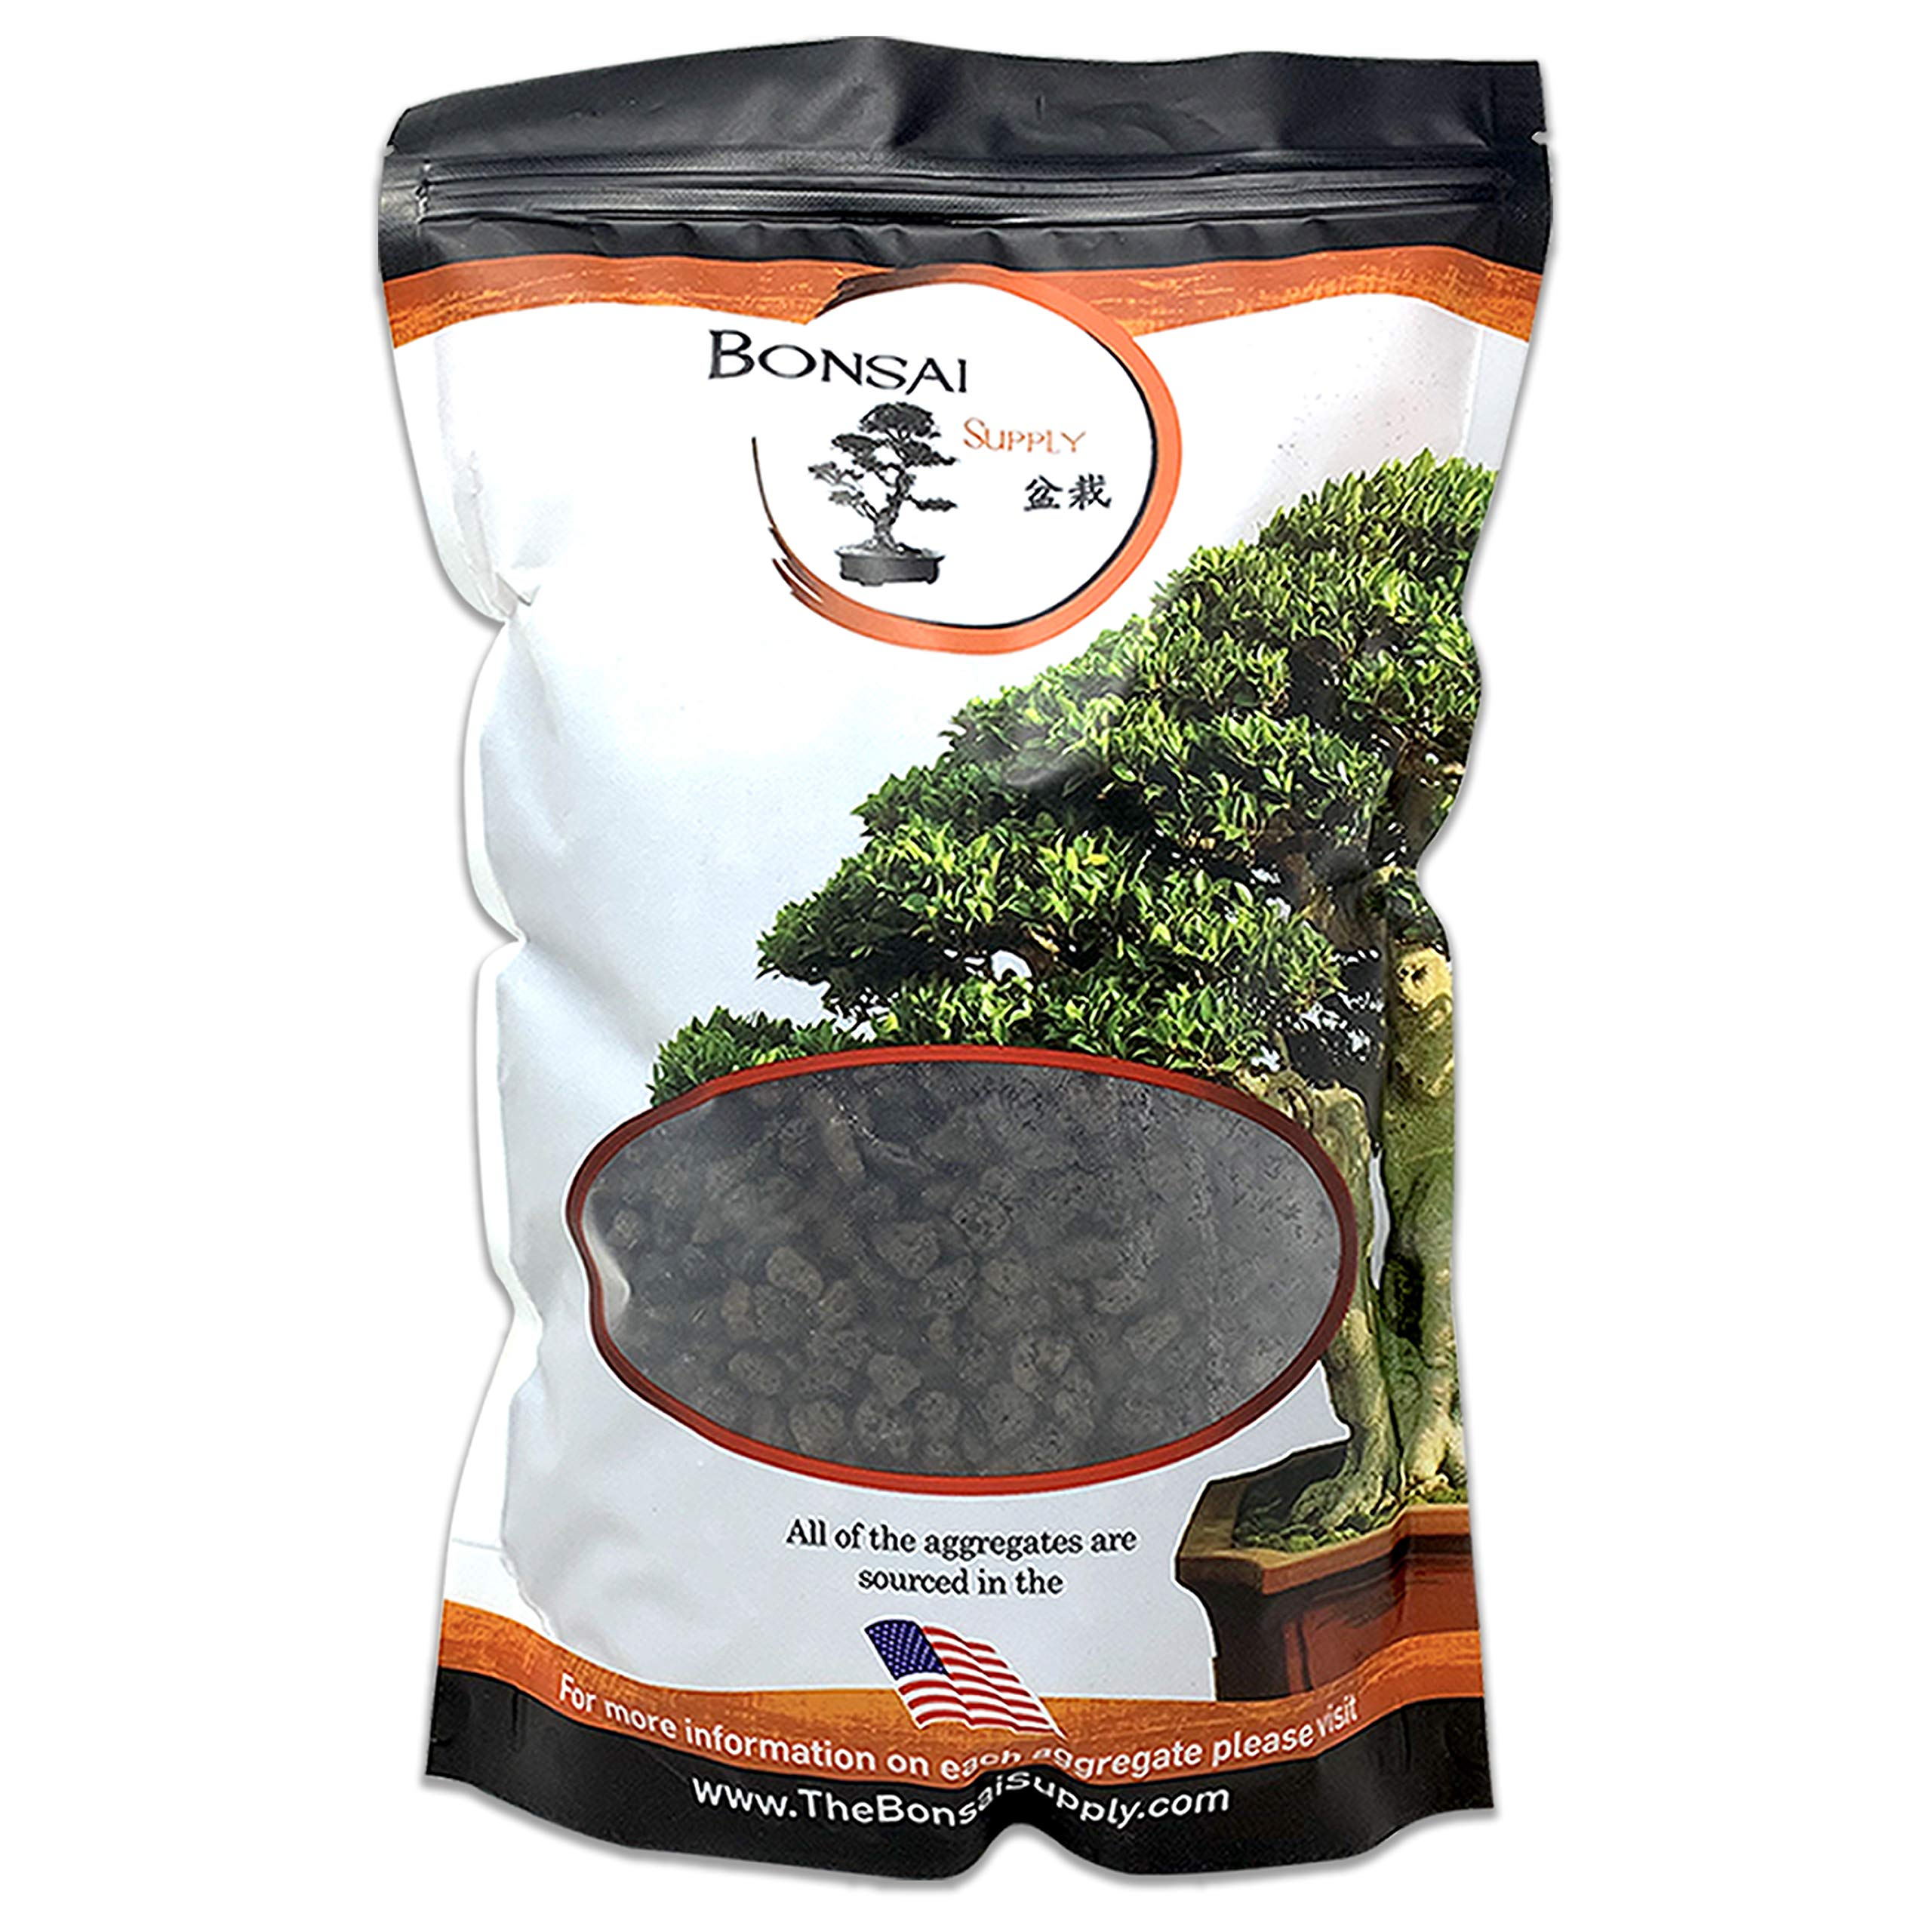 Lava Rock The Bonsai Supply 1 4 Inch Horticultural Black Lava Rock Soil Additive For Cacti Succulents Plants Bonsai 2 Quart Bag No Dyes Or Chemicals 100 Pure Volcanic Rock Top Dressing